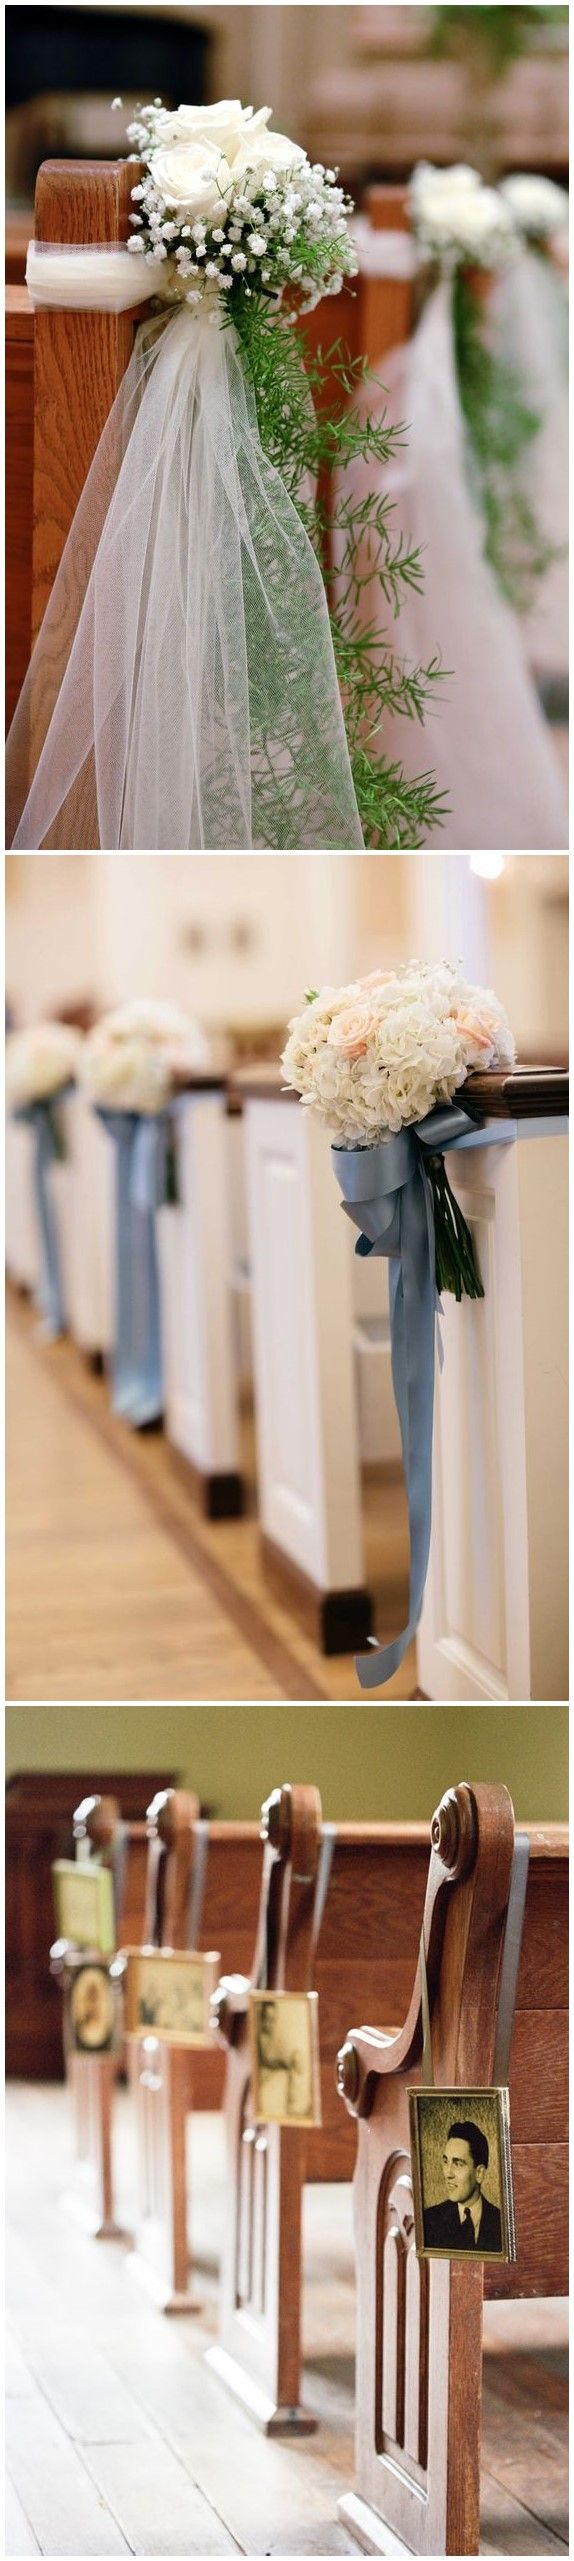 Best 25 church weddings ideas on pinterest church for Aisle wedding decoration ideas